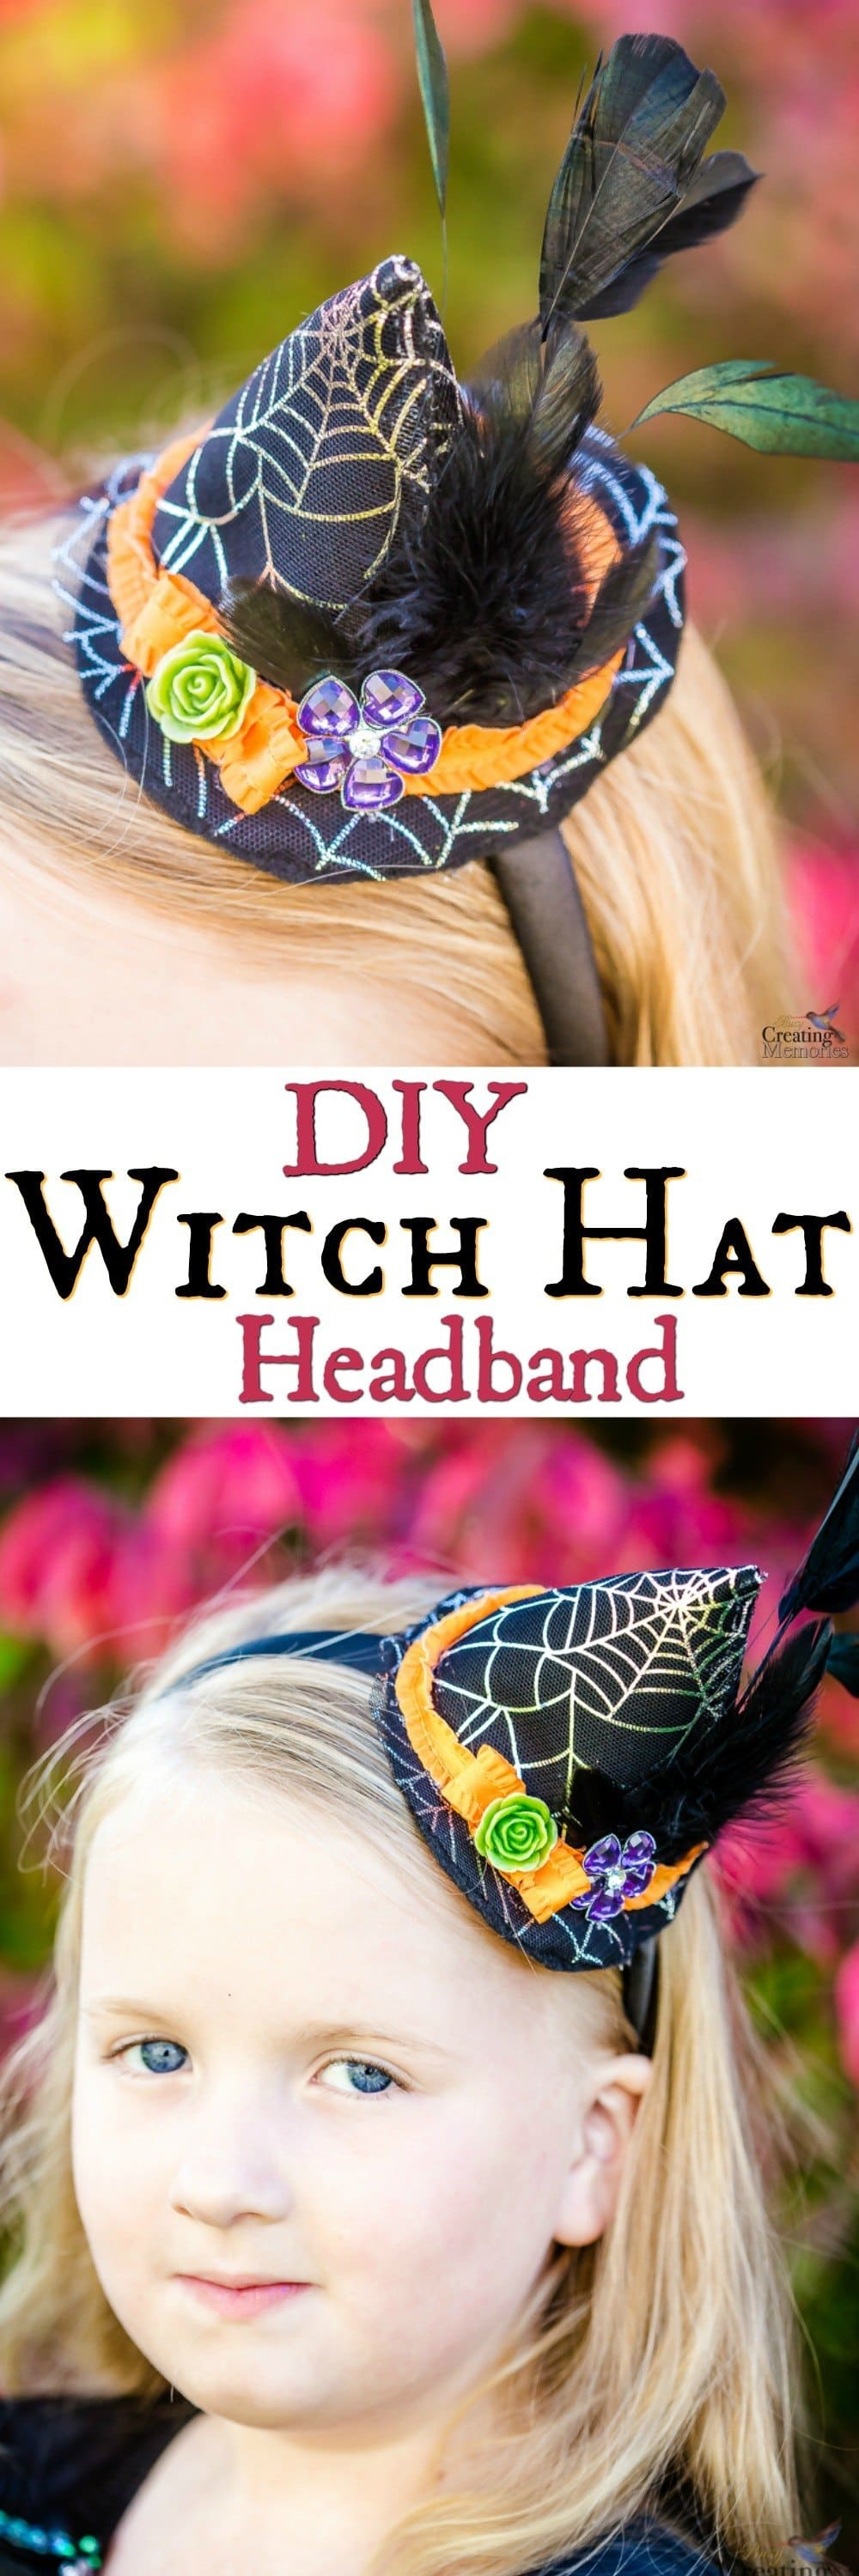 This is a quick and easy step by step DIY tutorial pattern on how to make a Mini witch hat headband for your baby, young girls, and adults. Works for all sizes. Using black felt, orange ribbon, feathers, a button and rose resin cabochons. Makes beautiful photo props or a great last-minute Halloween accessory craft for the best Witch Costume!